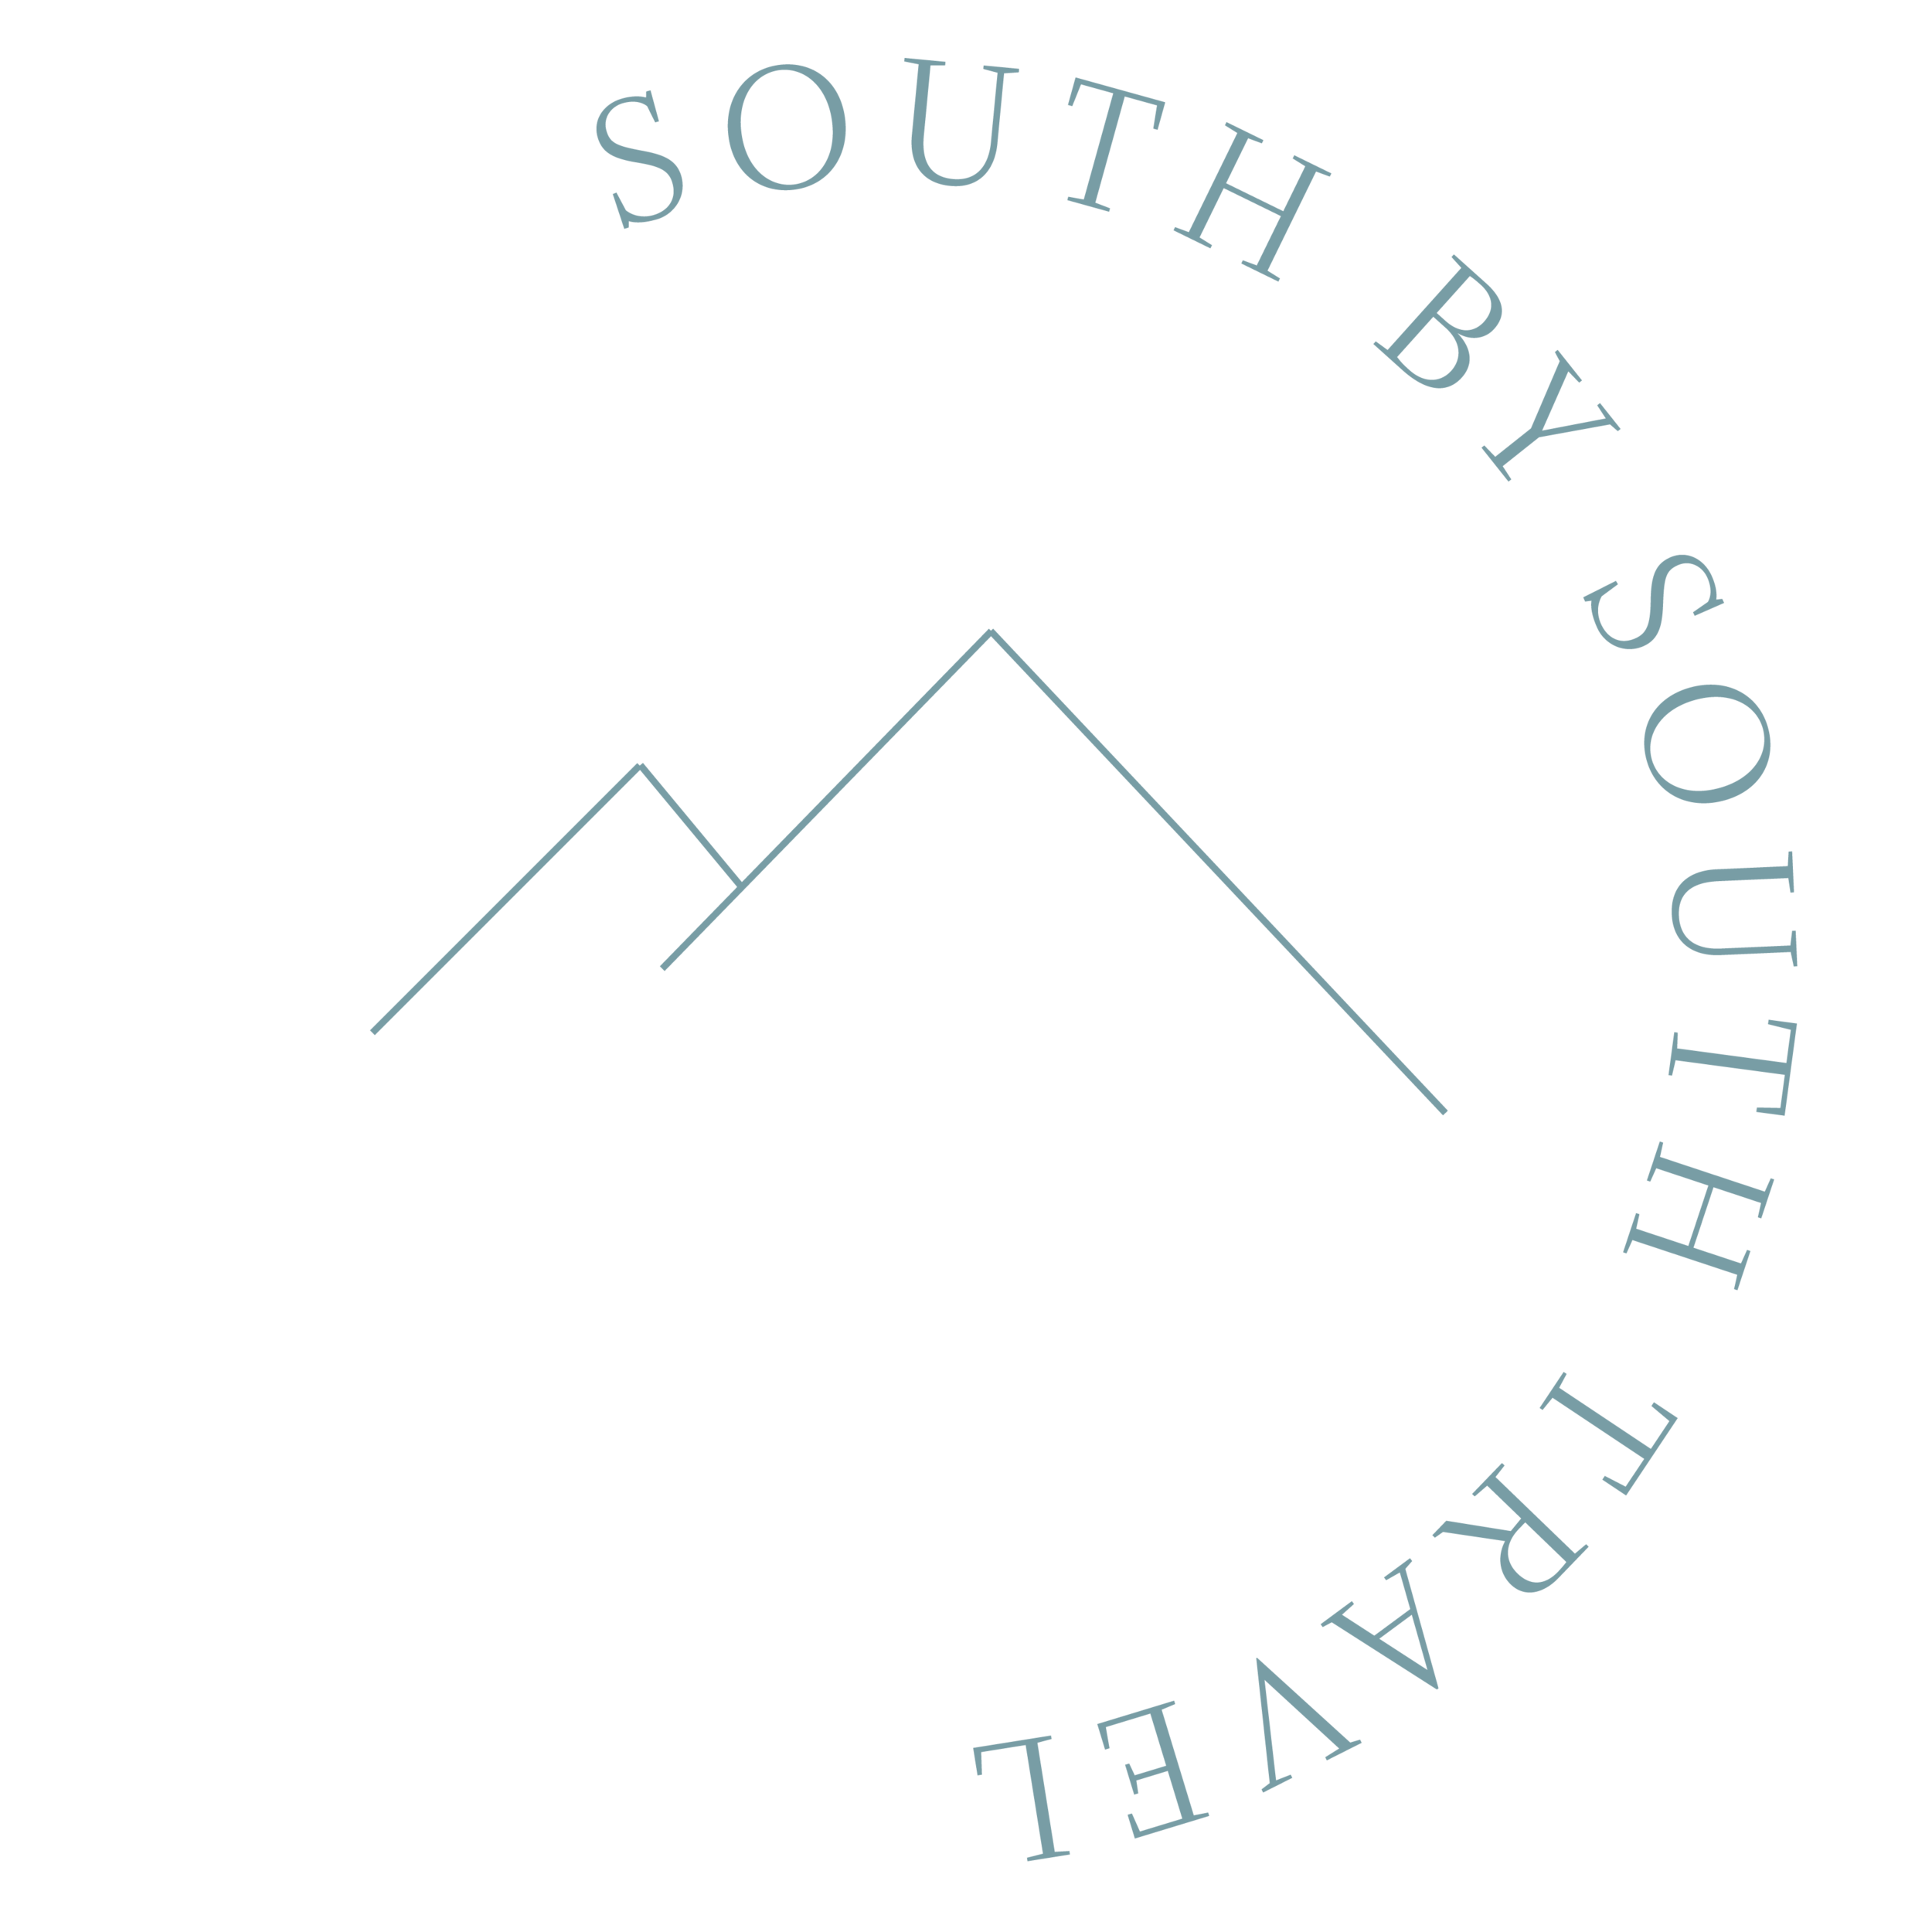 SouthBySouth-Stamp2.png